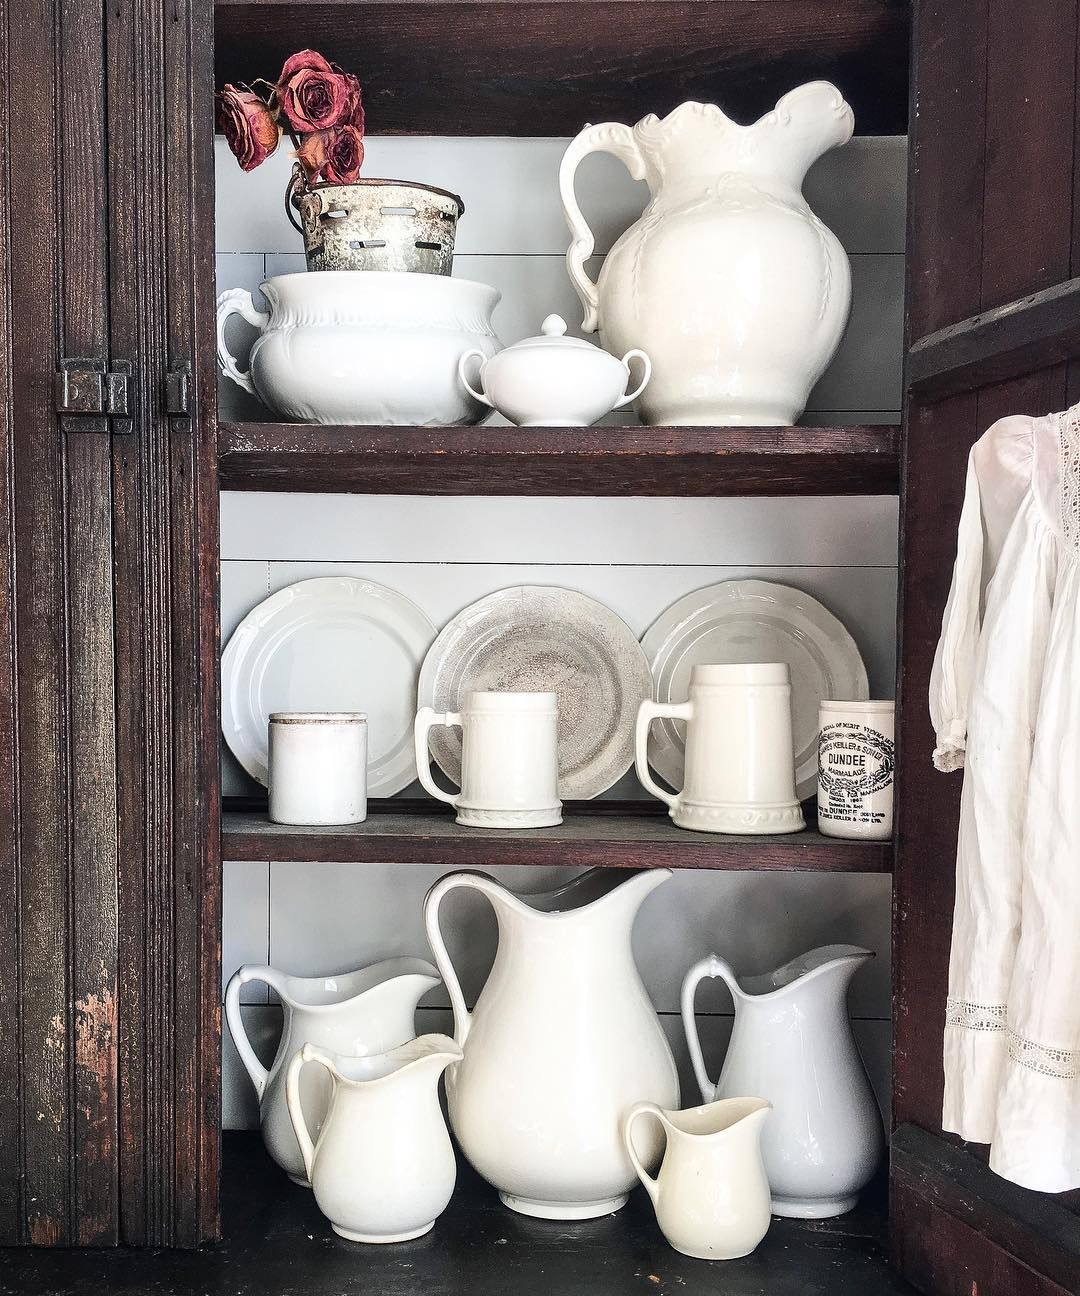 ironstone #collection | Ironstone in 2019 | Pinterest | Above ... on small kitchen design white, decorating small space dining room, decorating top of kitchen cabinets, decorating above refrigerator, decorating ideas small spaces magazine,